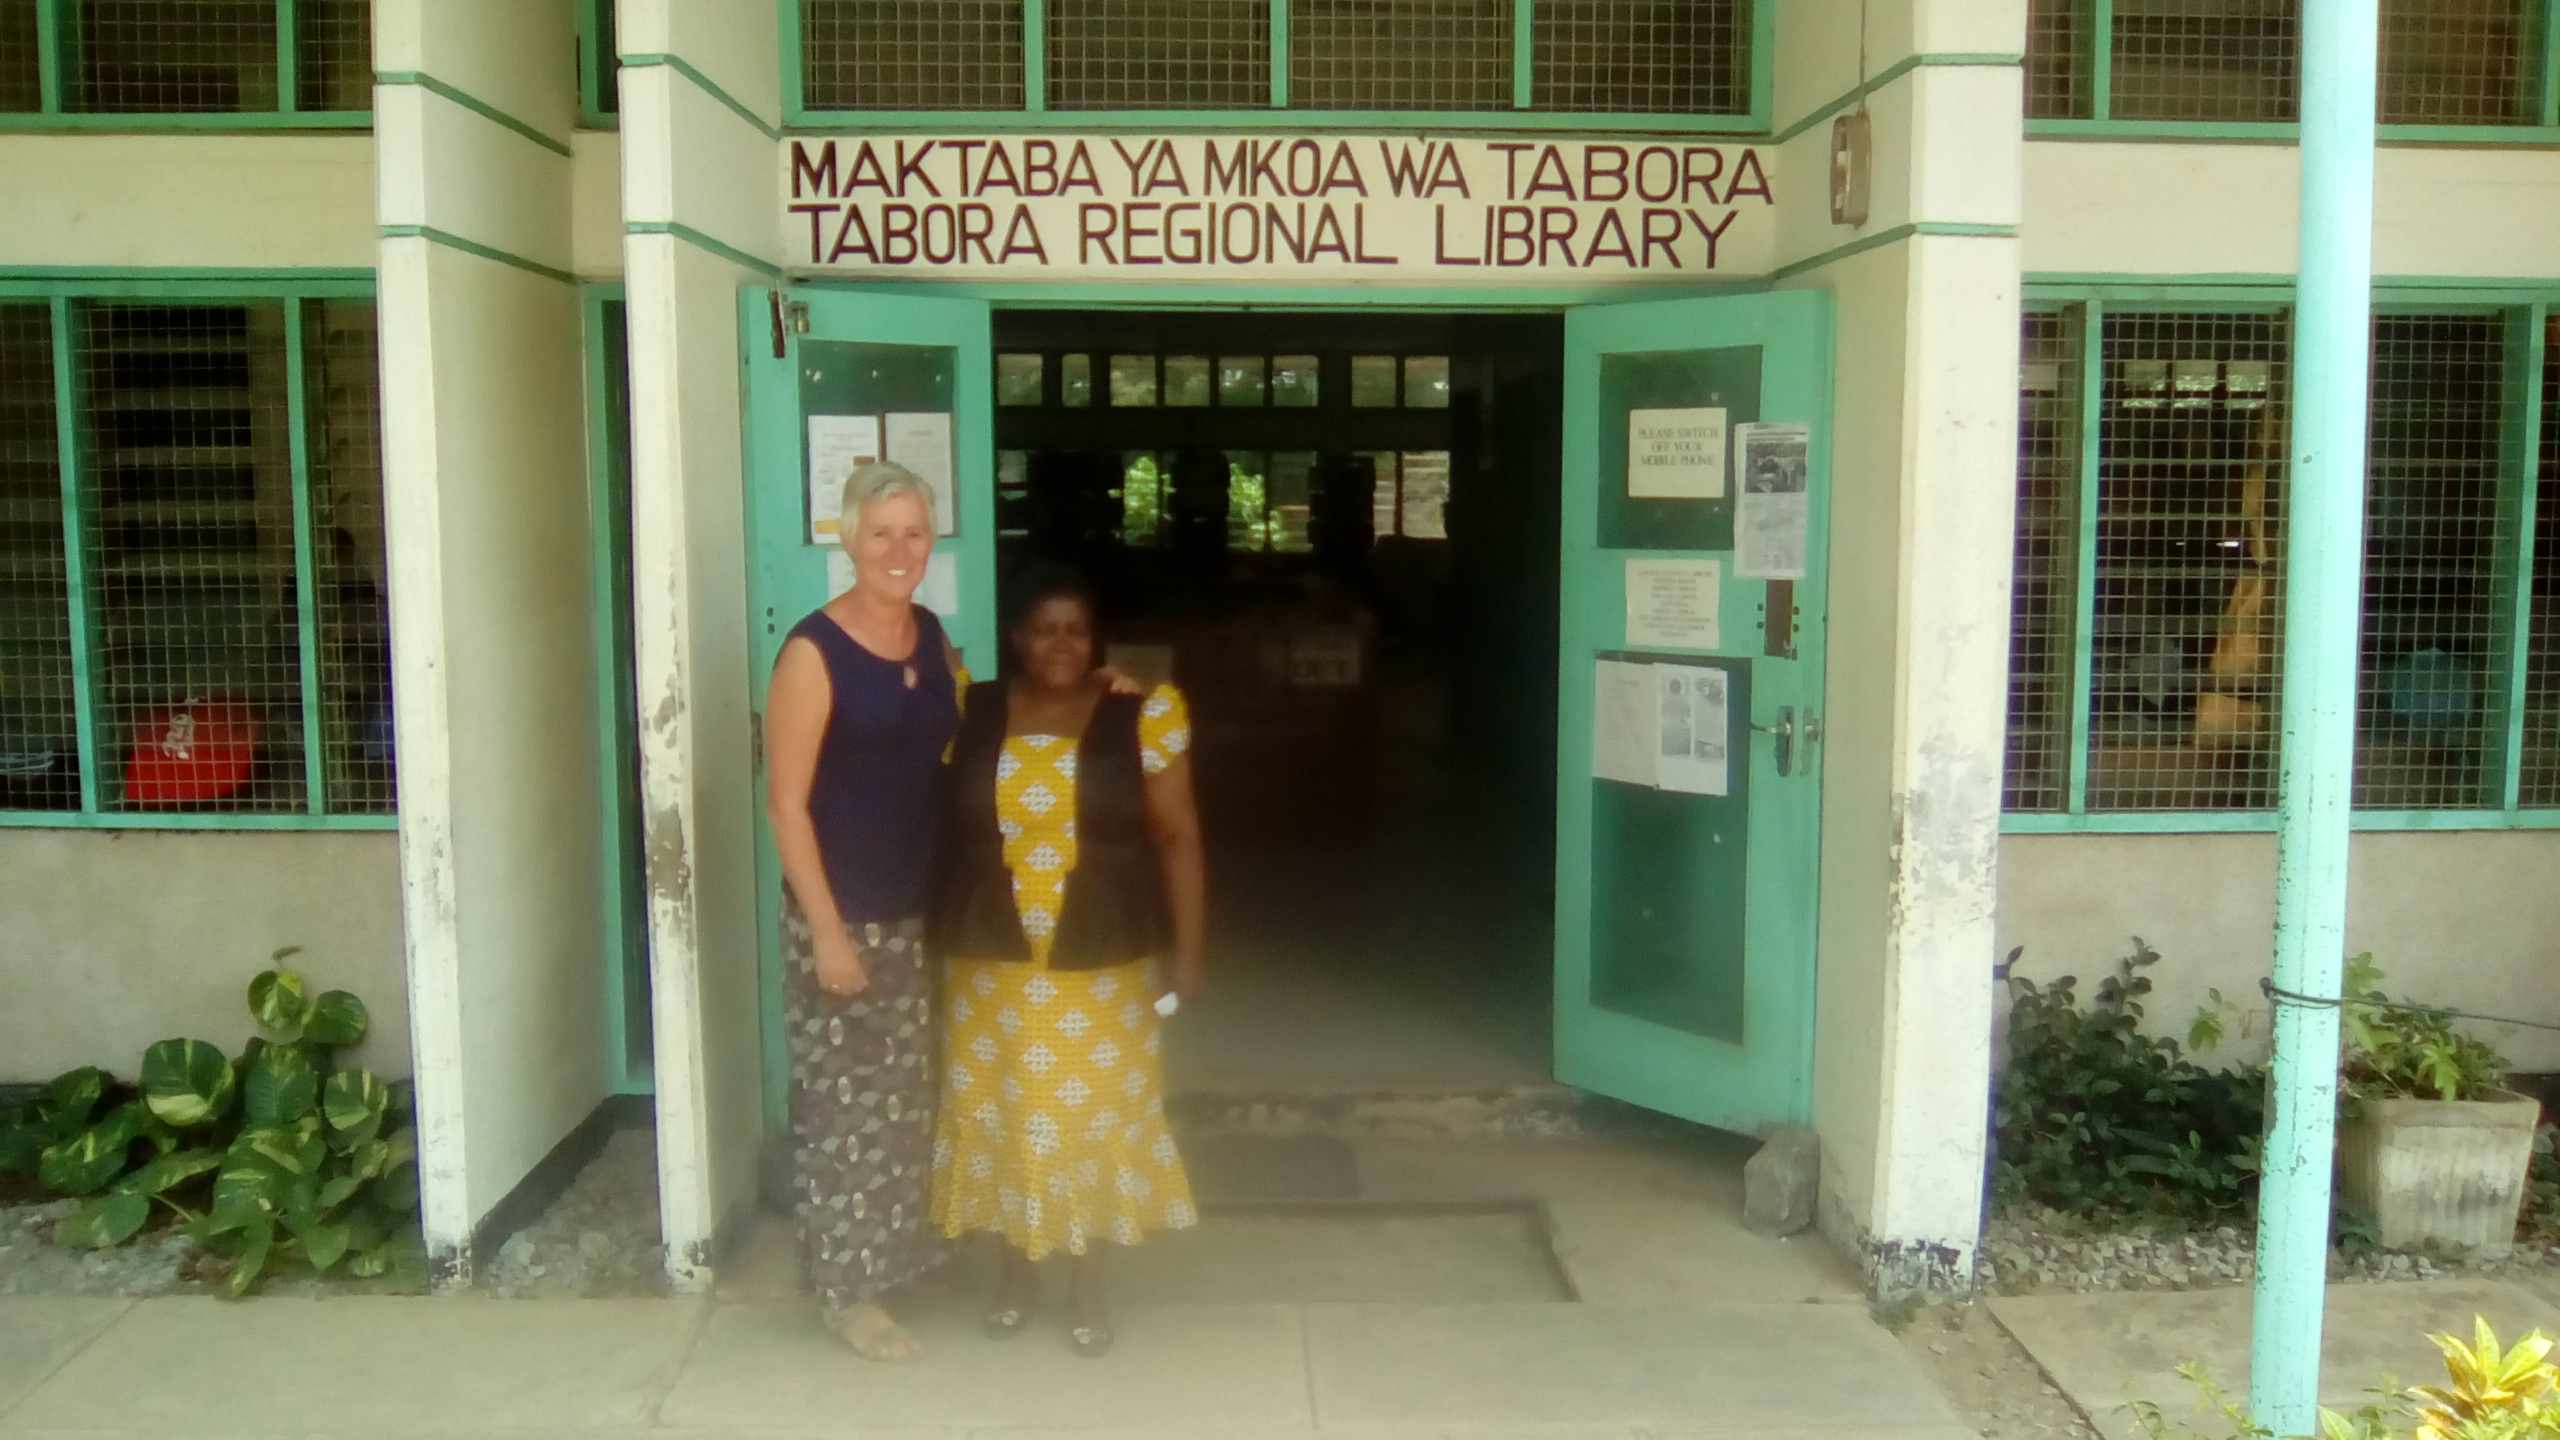 Visit to the library of Tabora